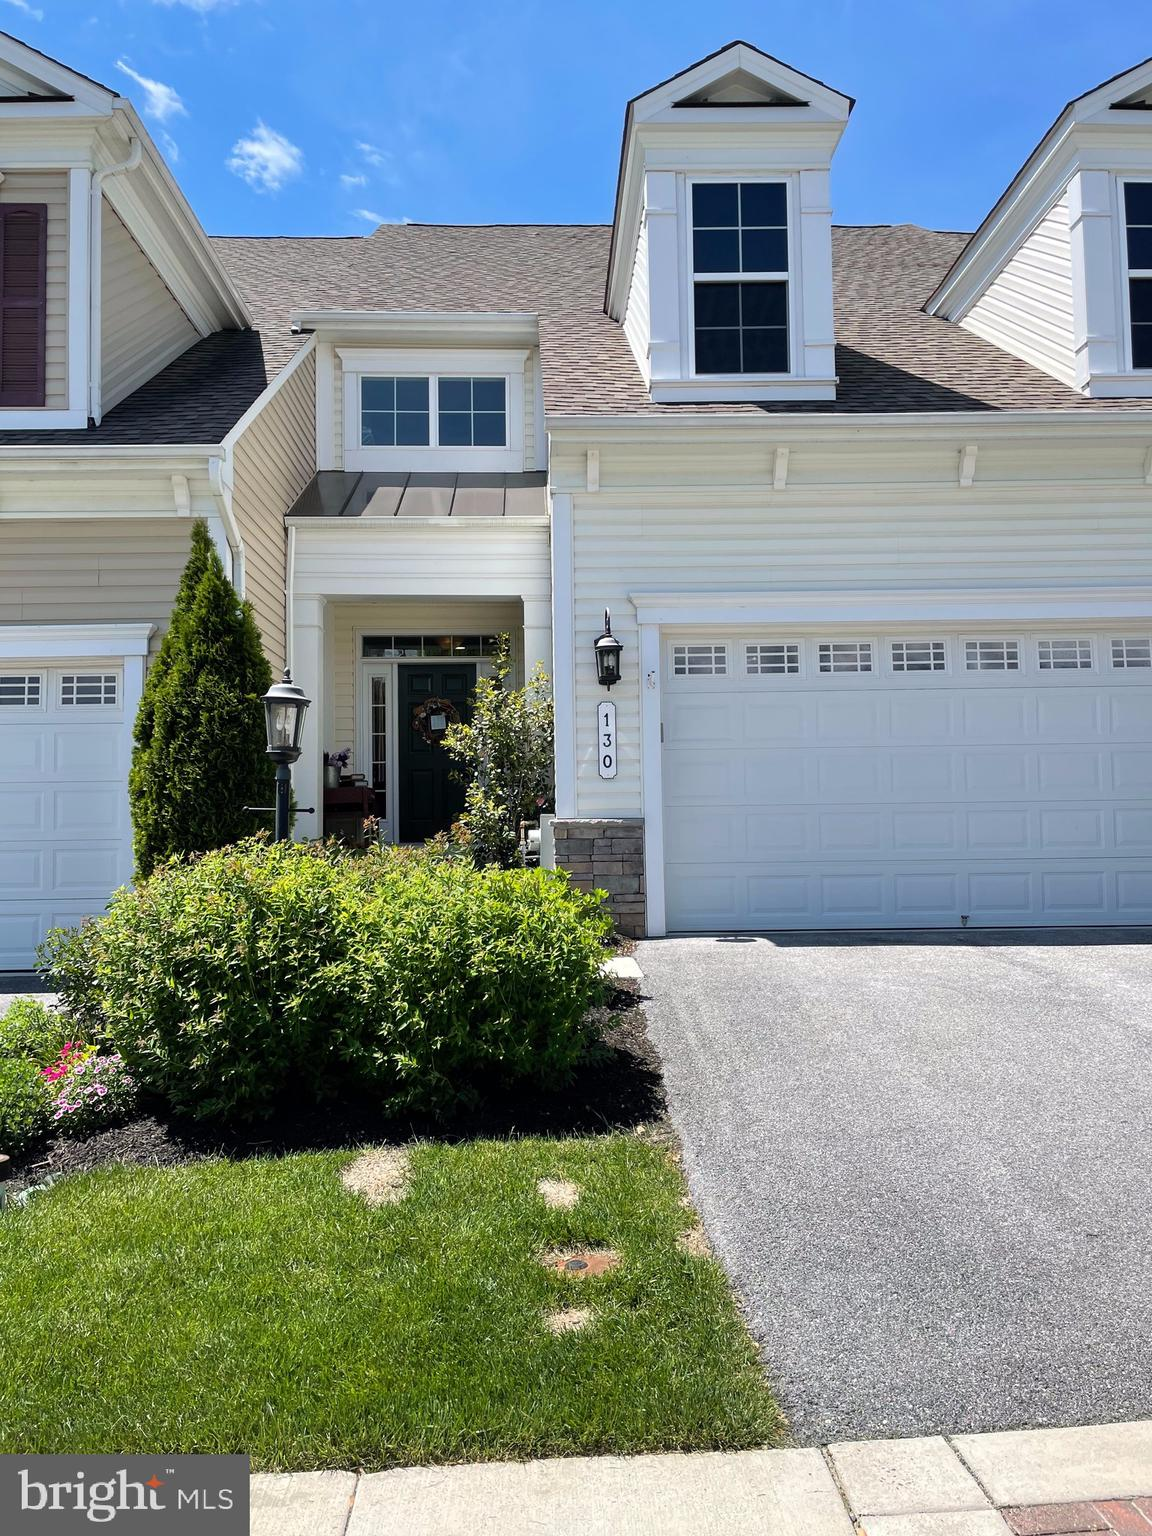 Lovely 2616 SF Villa with hardwood floors throughout the main level, which flow to the sliders from